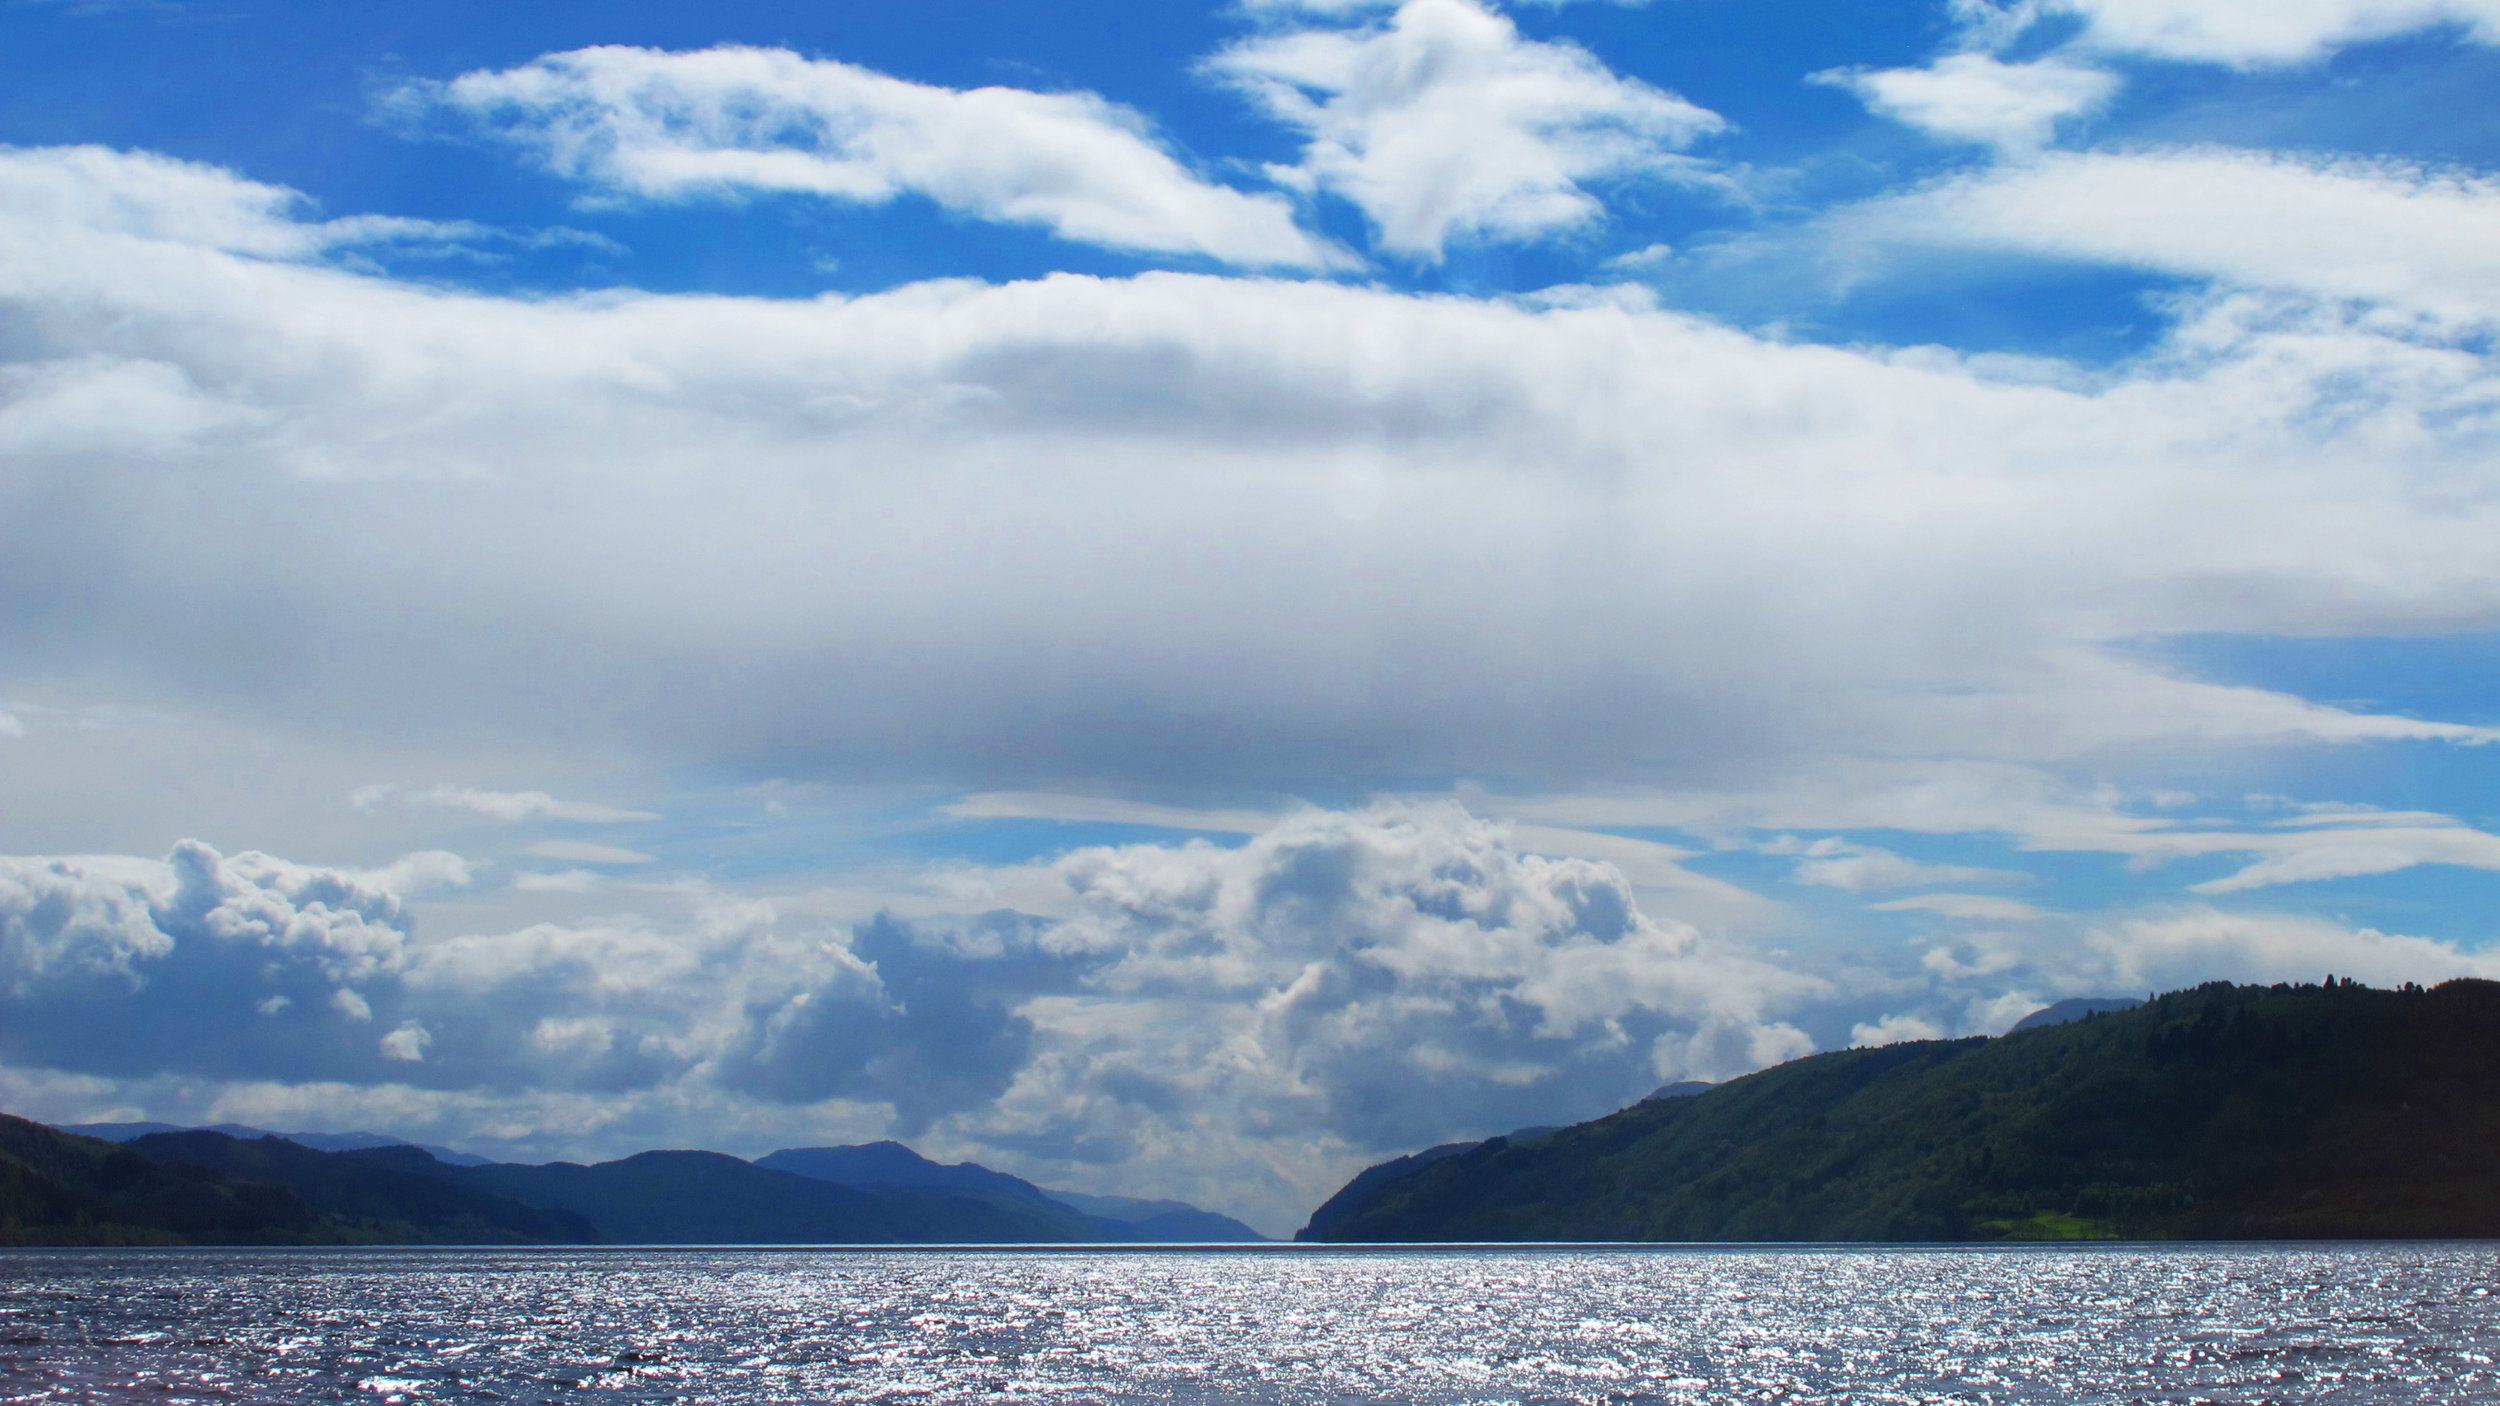 Loch Ness is the largest loch by water volume in all of Scotland. It holds more water than all of the lakes of England and Wales combined. Photo by Glen Moyer